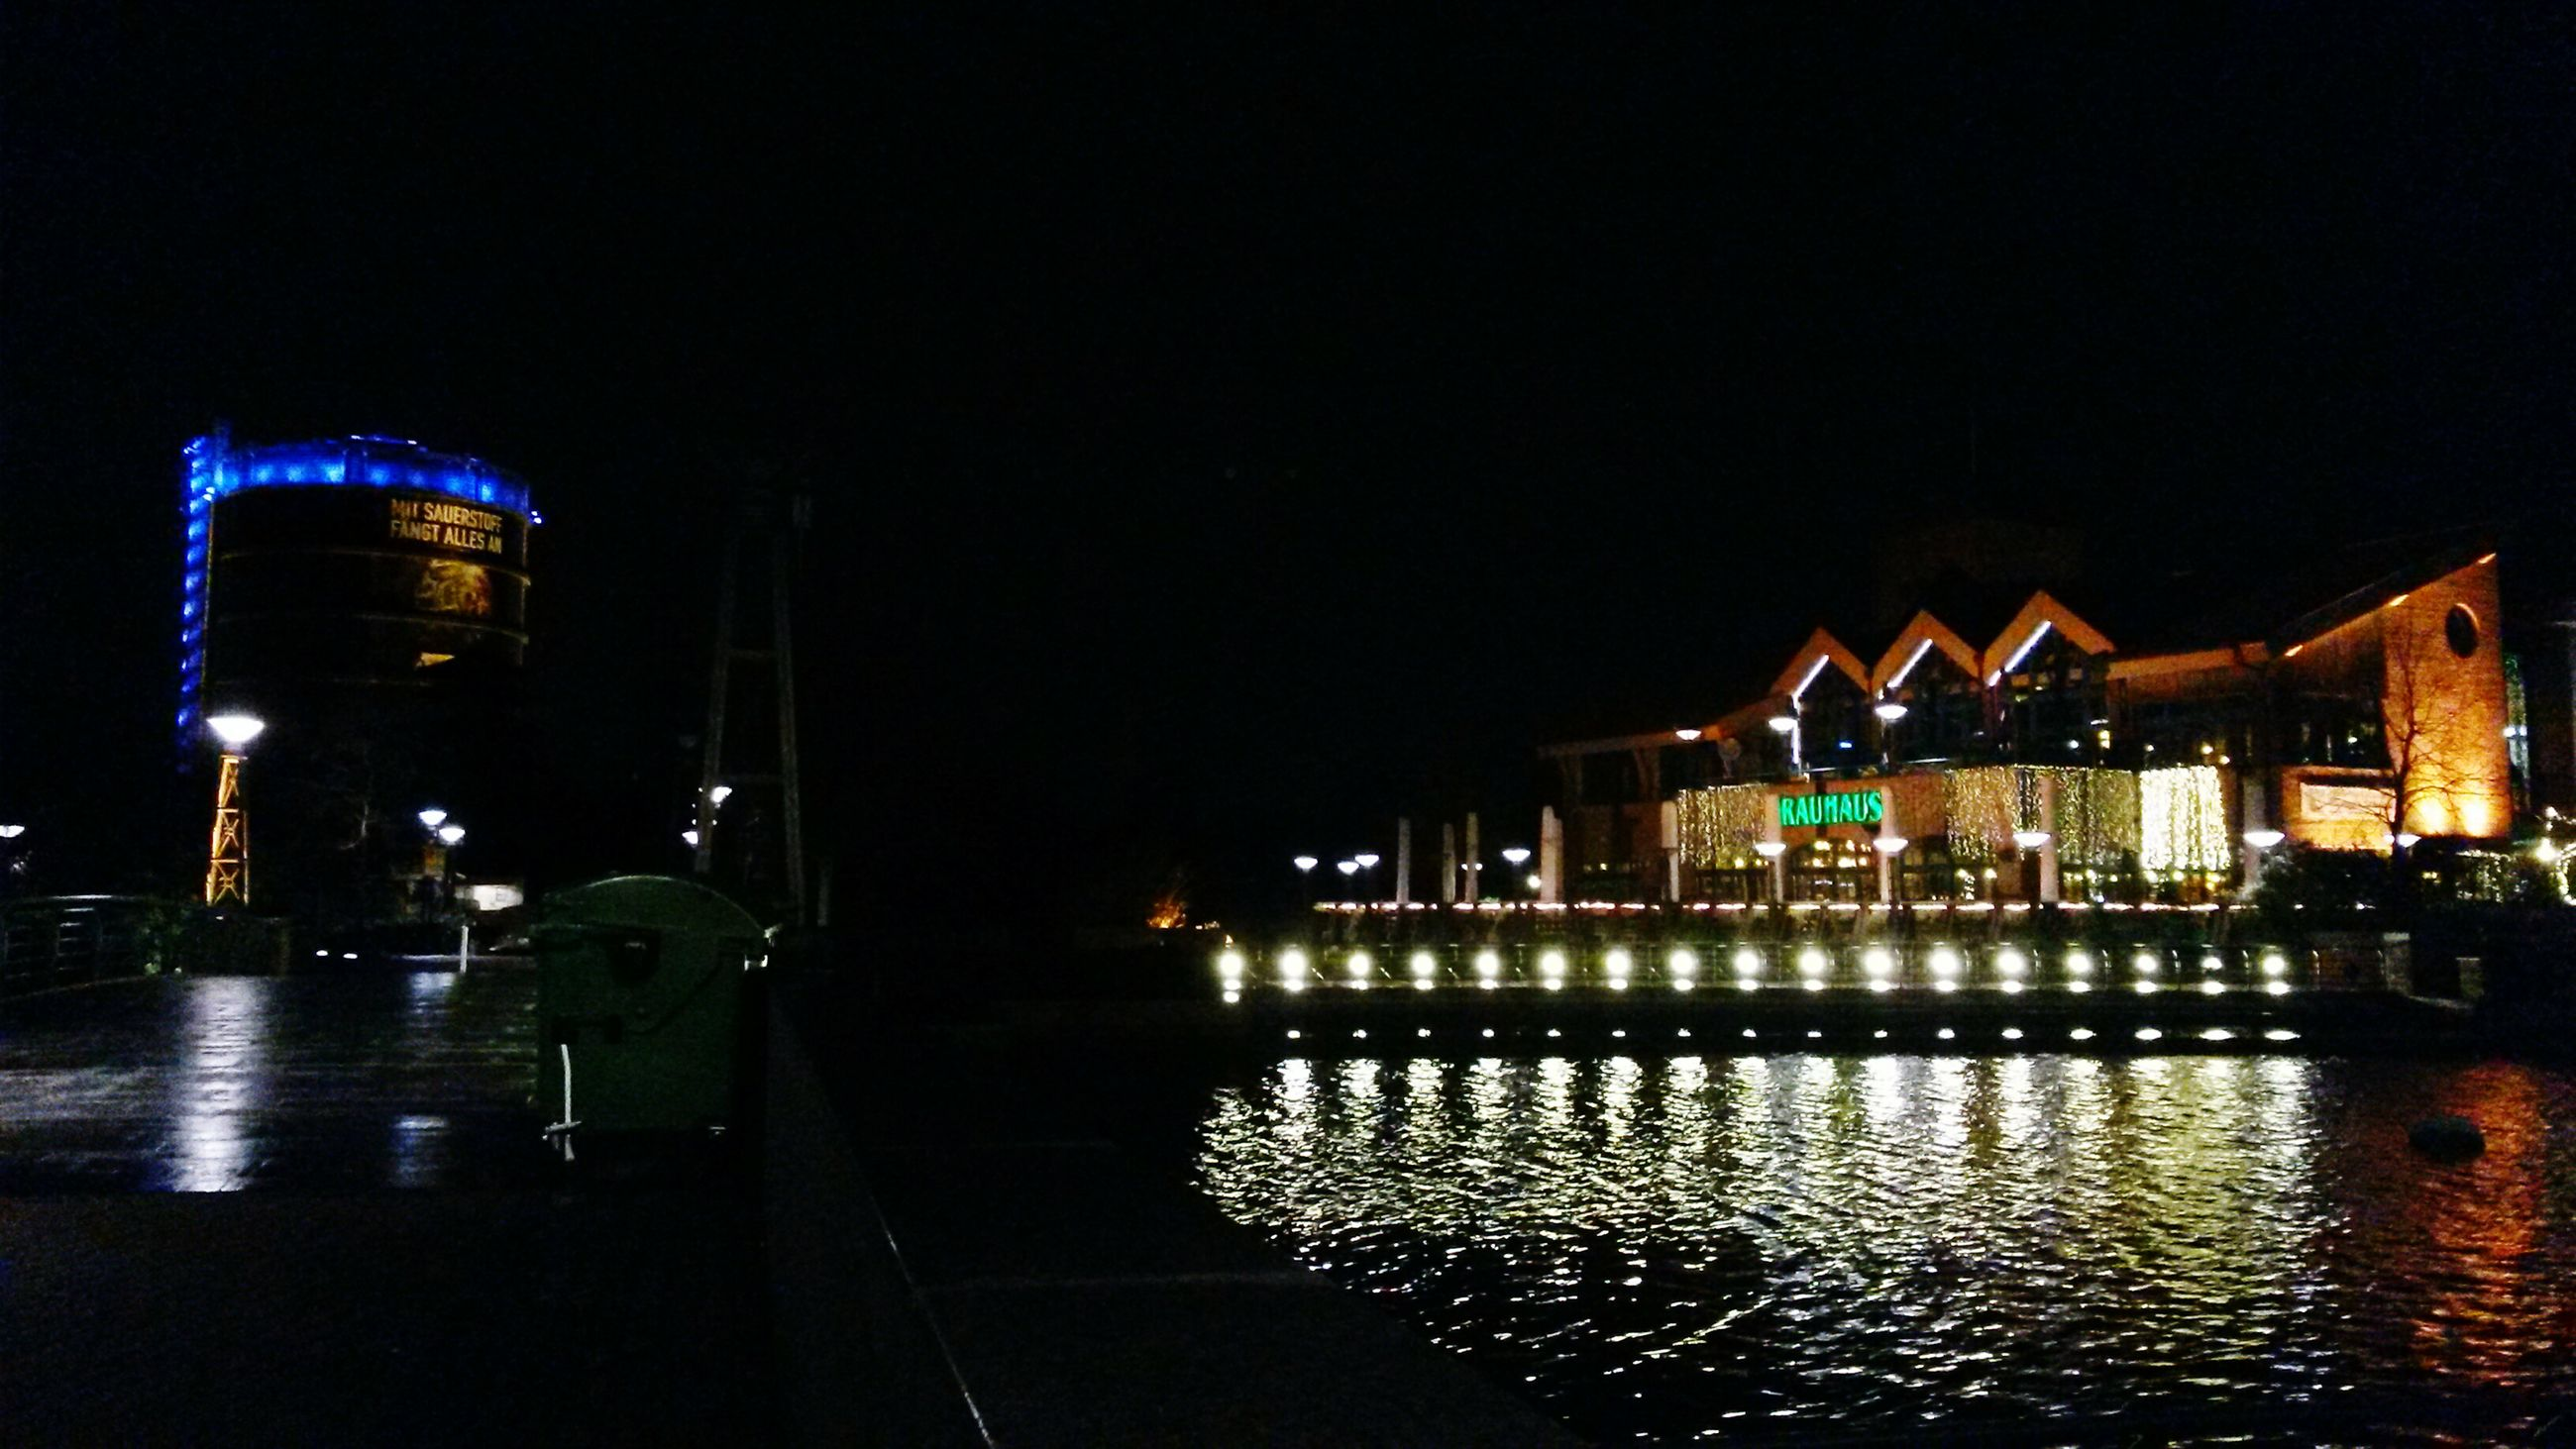 night, illuminated, building exterior, architecture, built structure, water, city, reflection, clear sky, street, street light, copy space, lighting equipment, waterfront, building, transportation, outdoors, city life, wet, sky